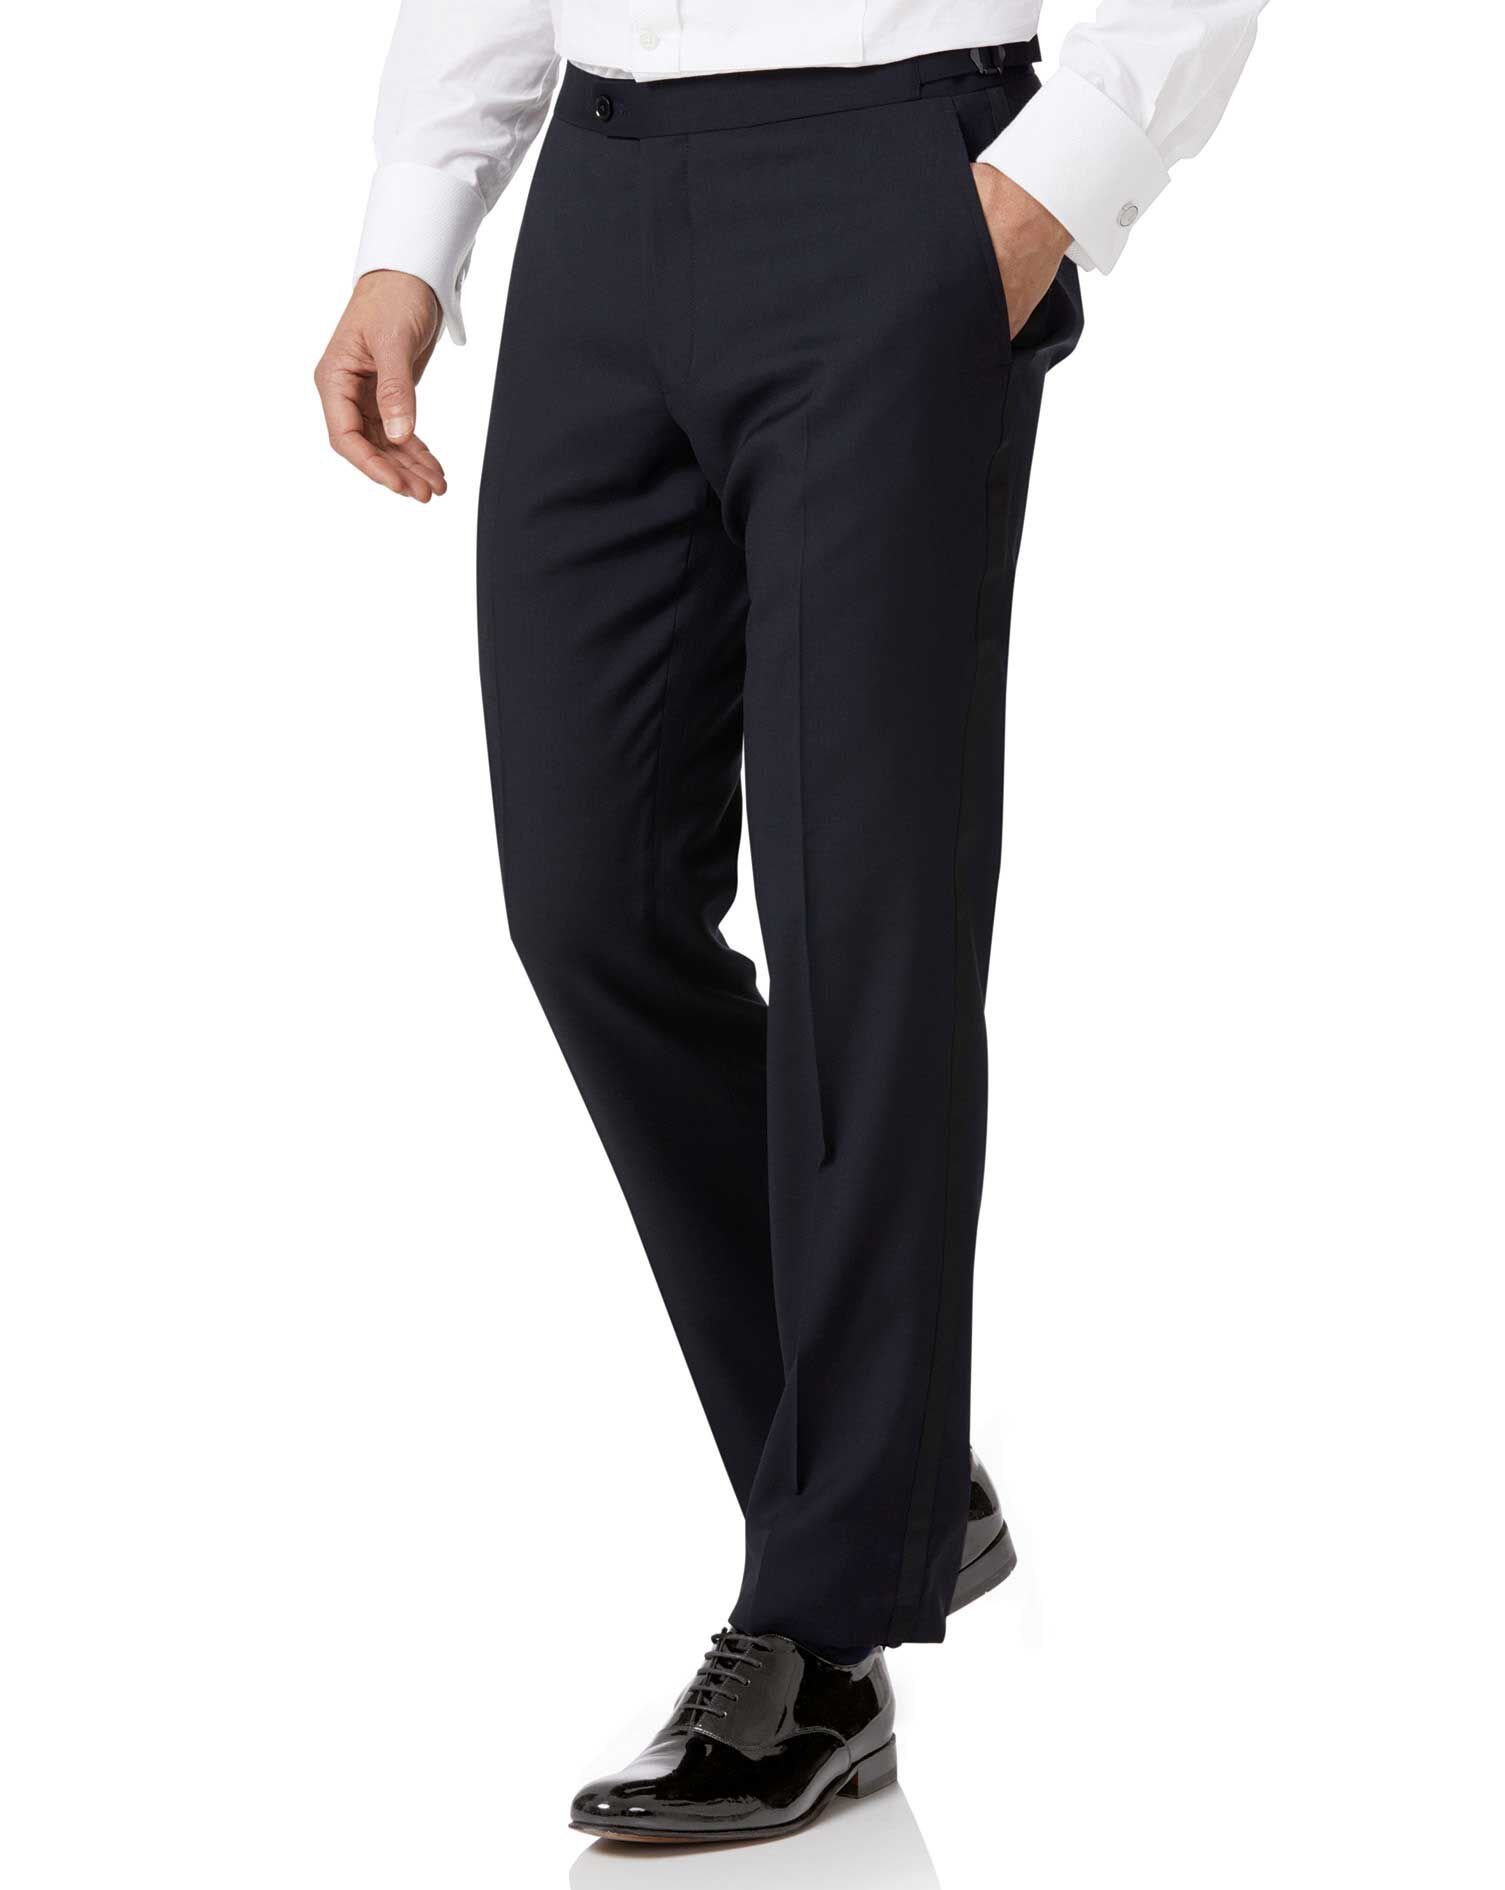 Navy Slim Fit Tuxedo Trousers Size W34 L38 by Charles Tyrwhitt